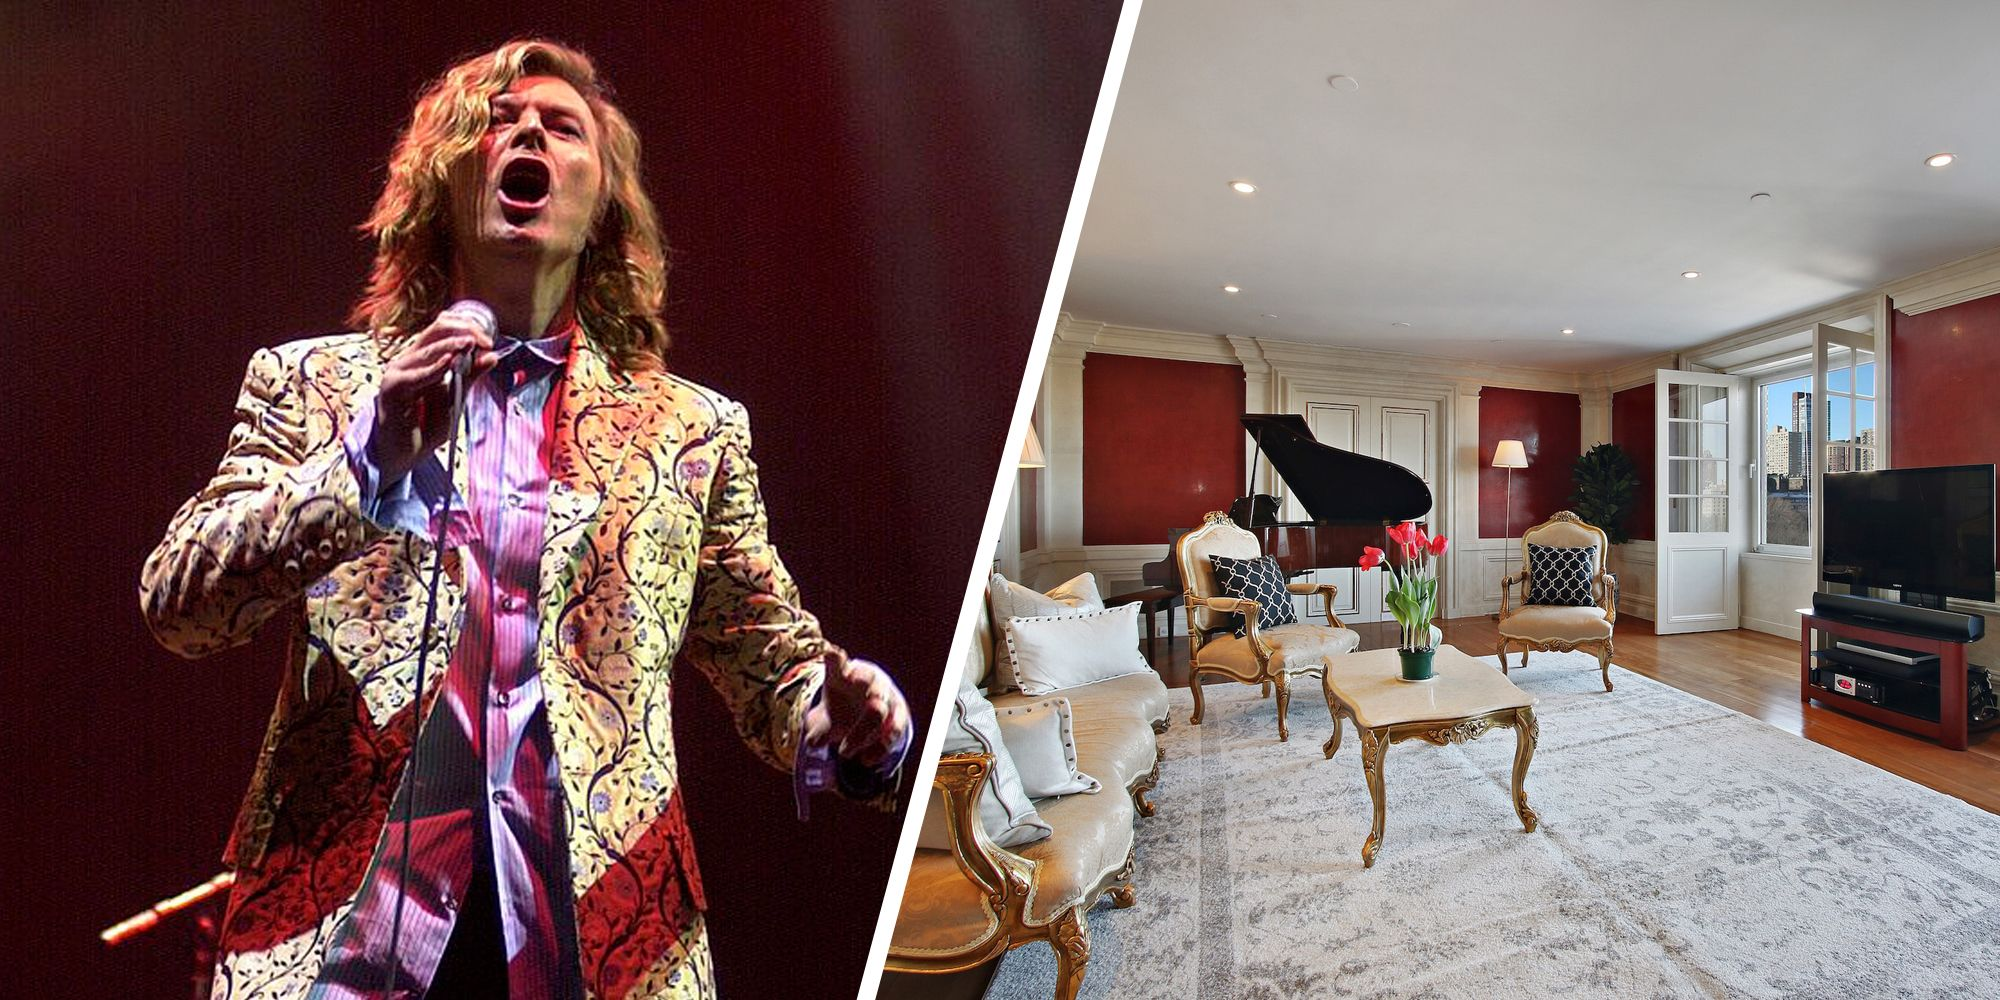 David Bowie's Former Home In The Essex House Can Be Yours For $6.5 Million